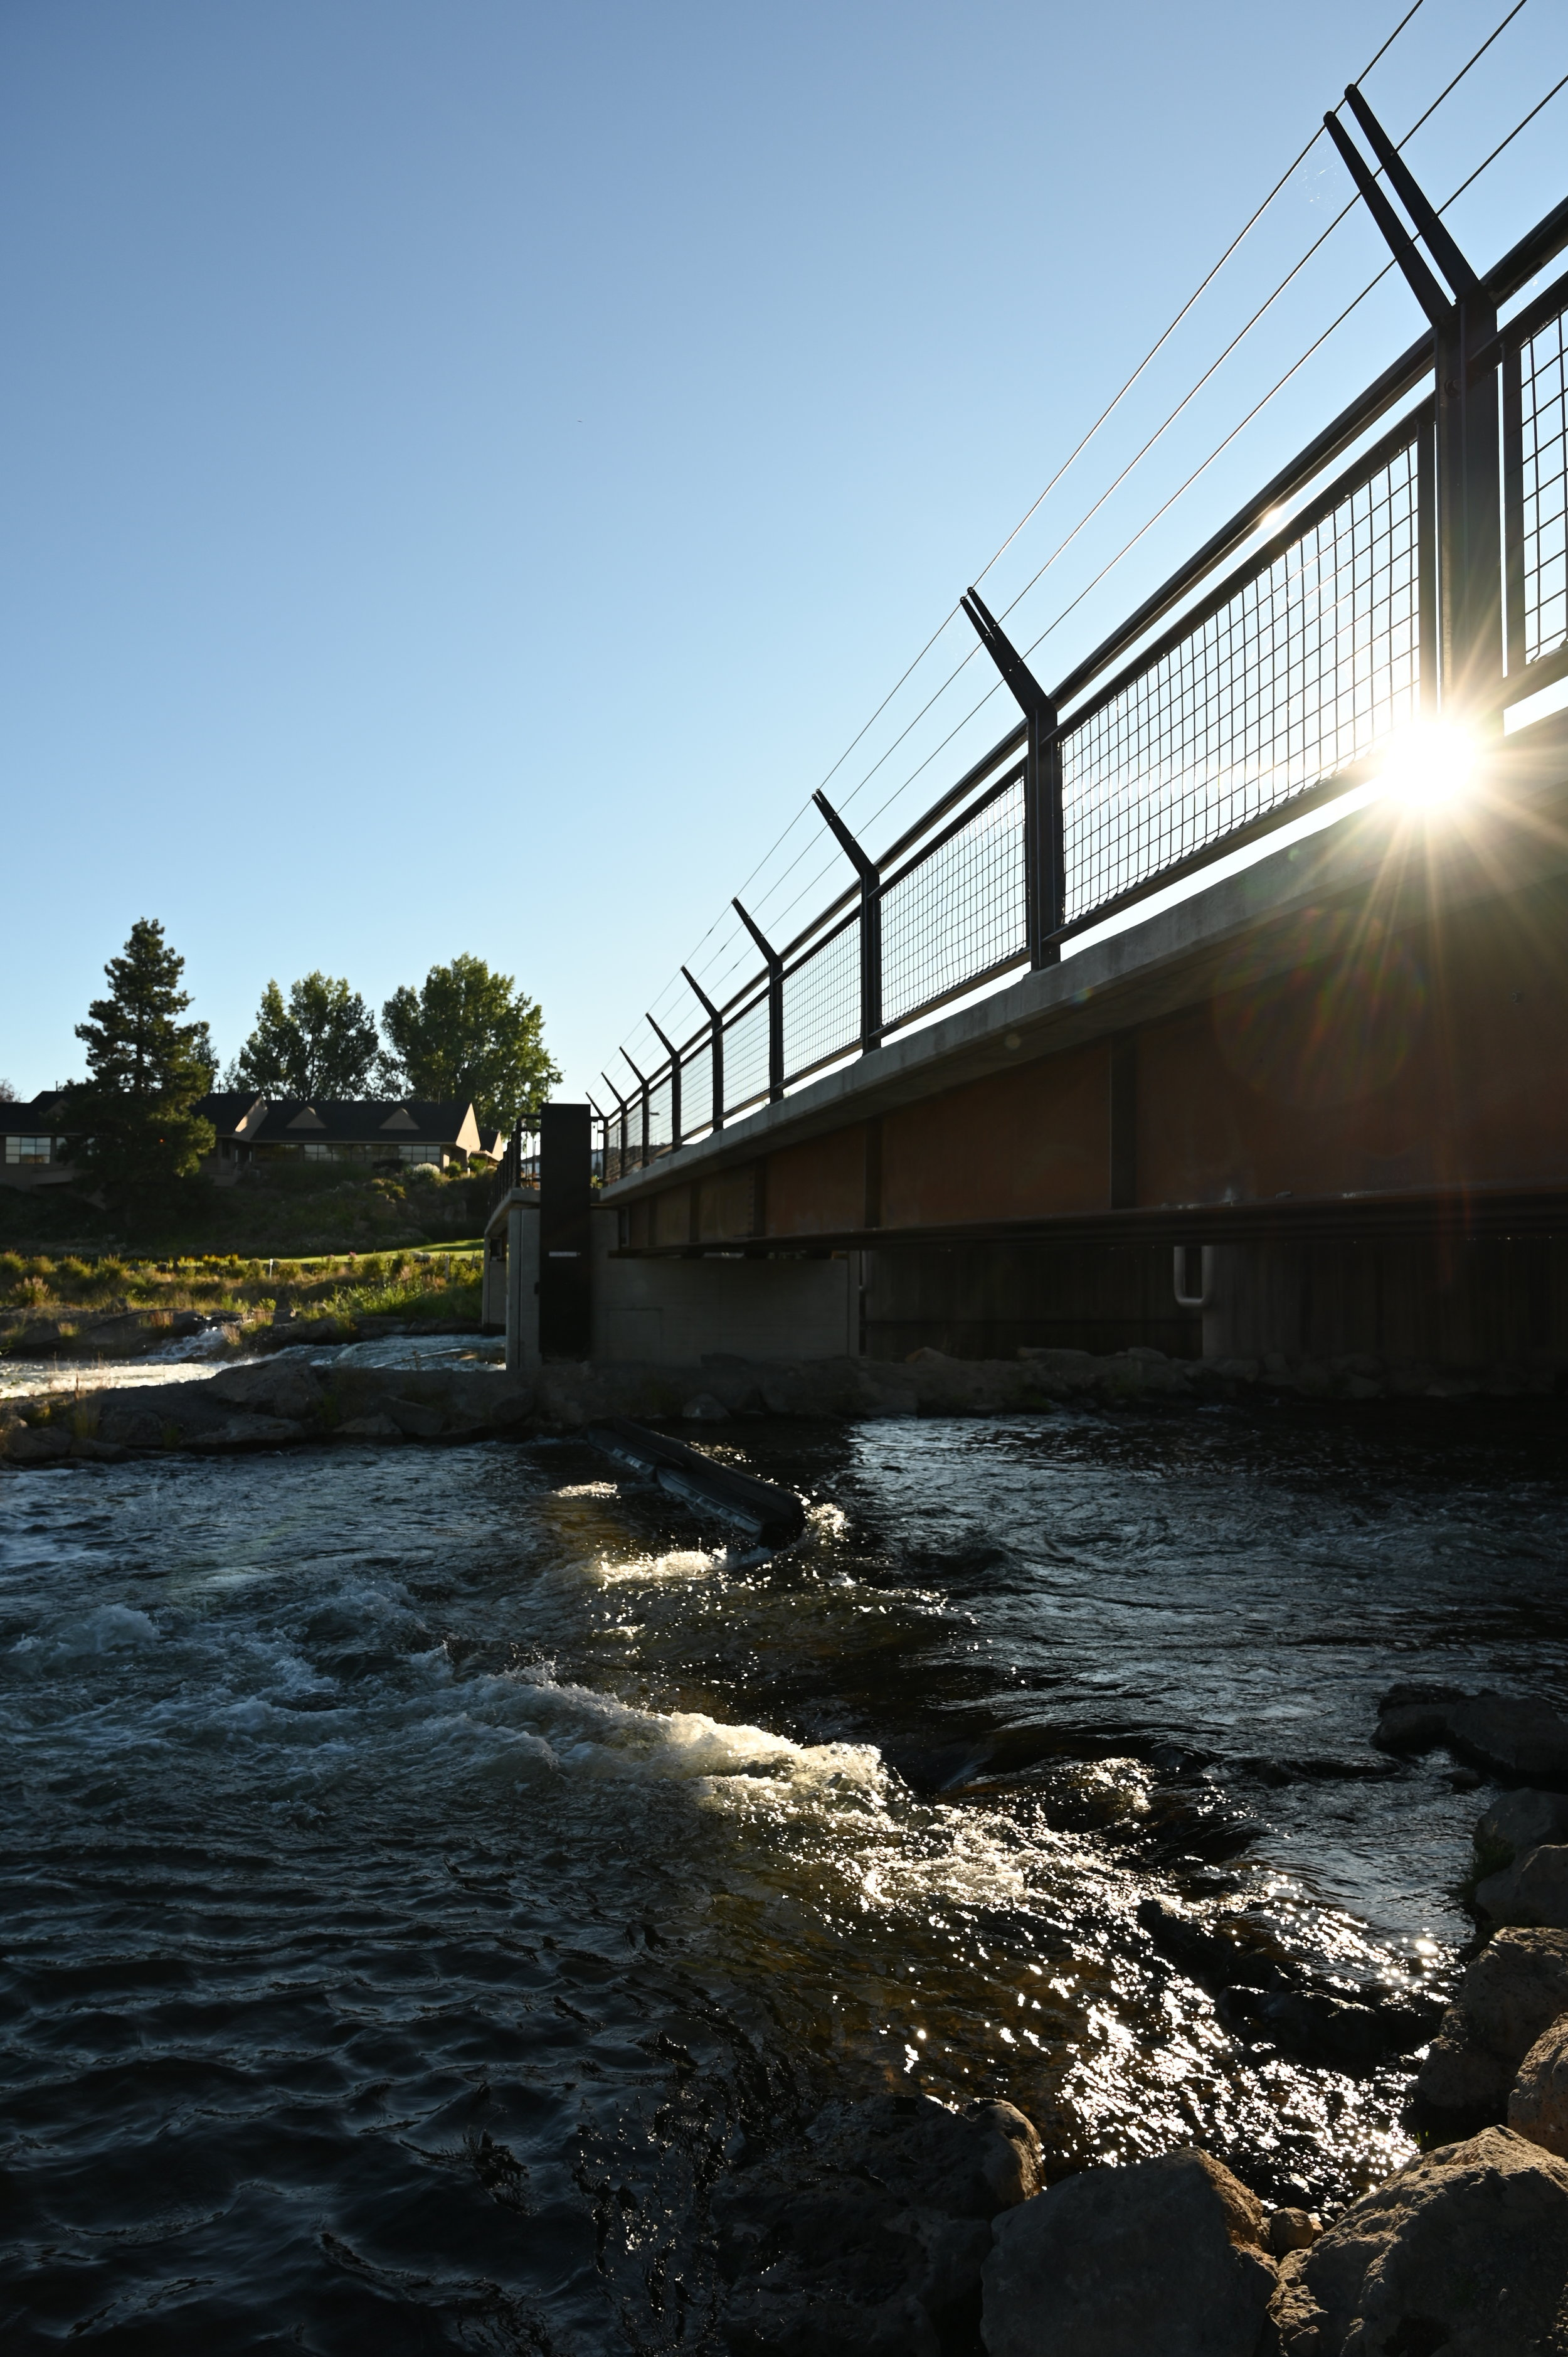 Bend_pedestrian_bridge_whitewater_park_sunset.JPG